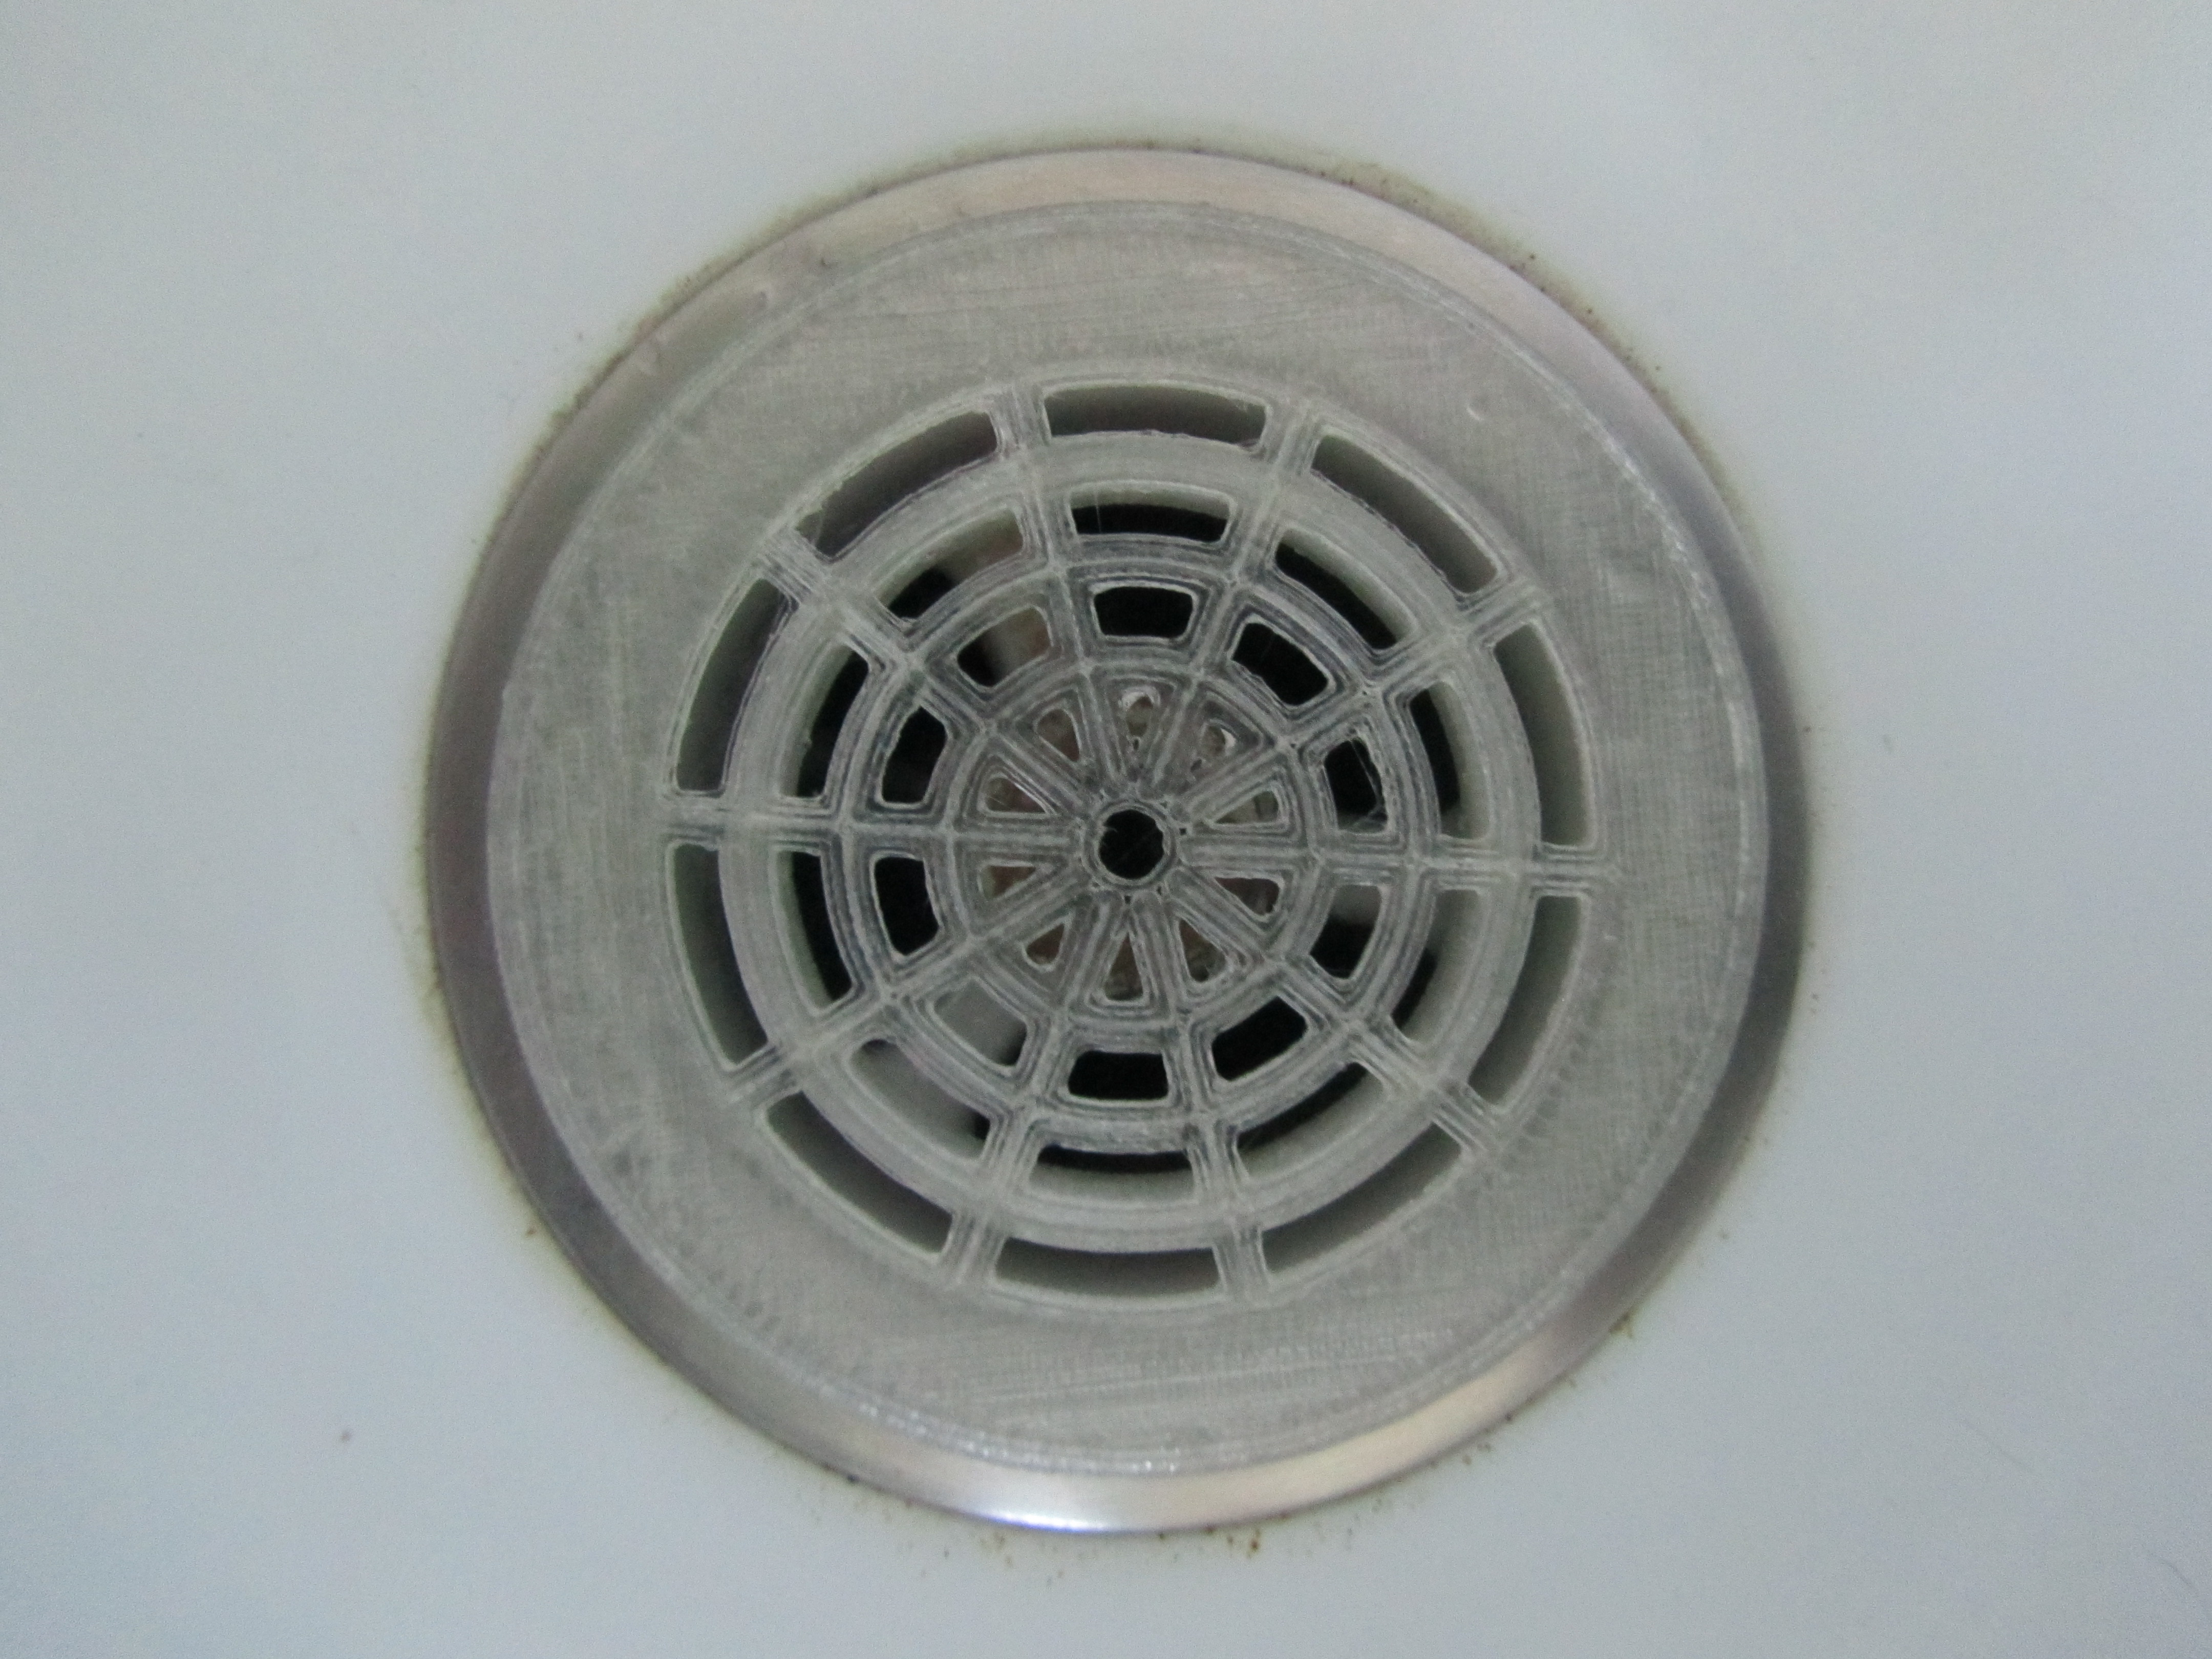 Hair Trap For Shower Drain. By Patoch Aug 4, 2014 View Original